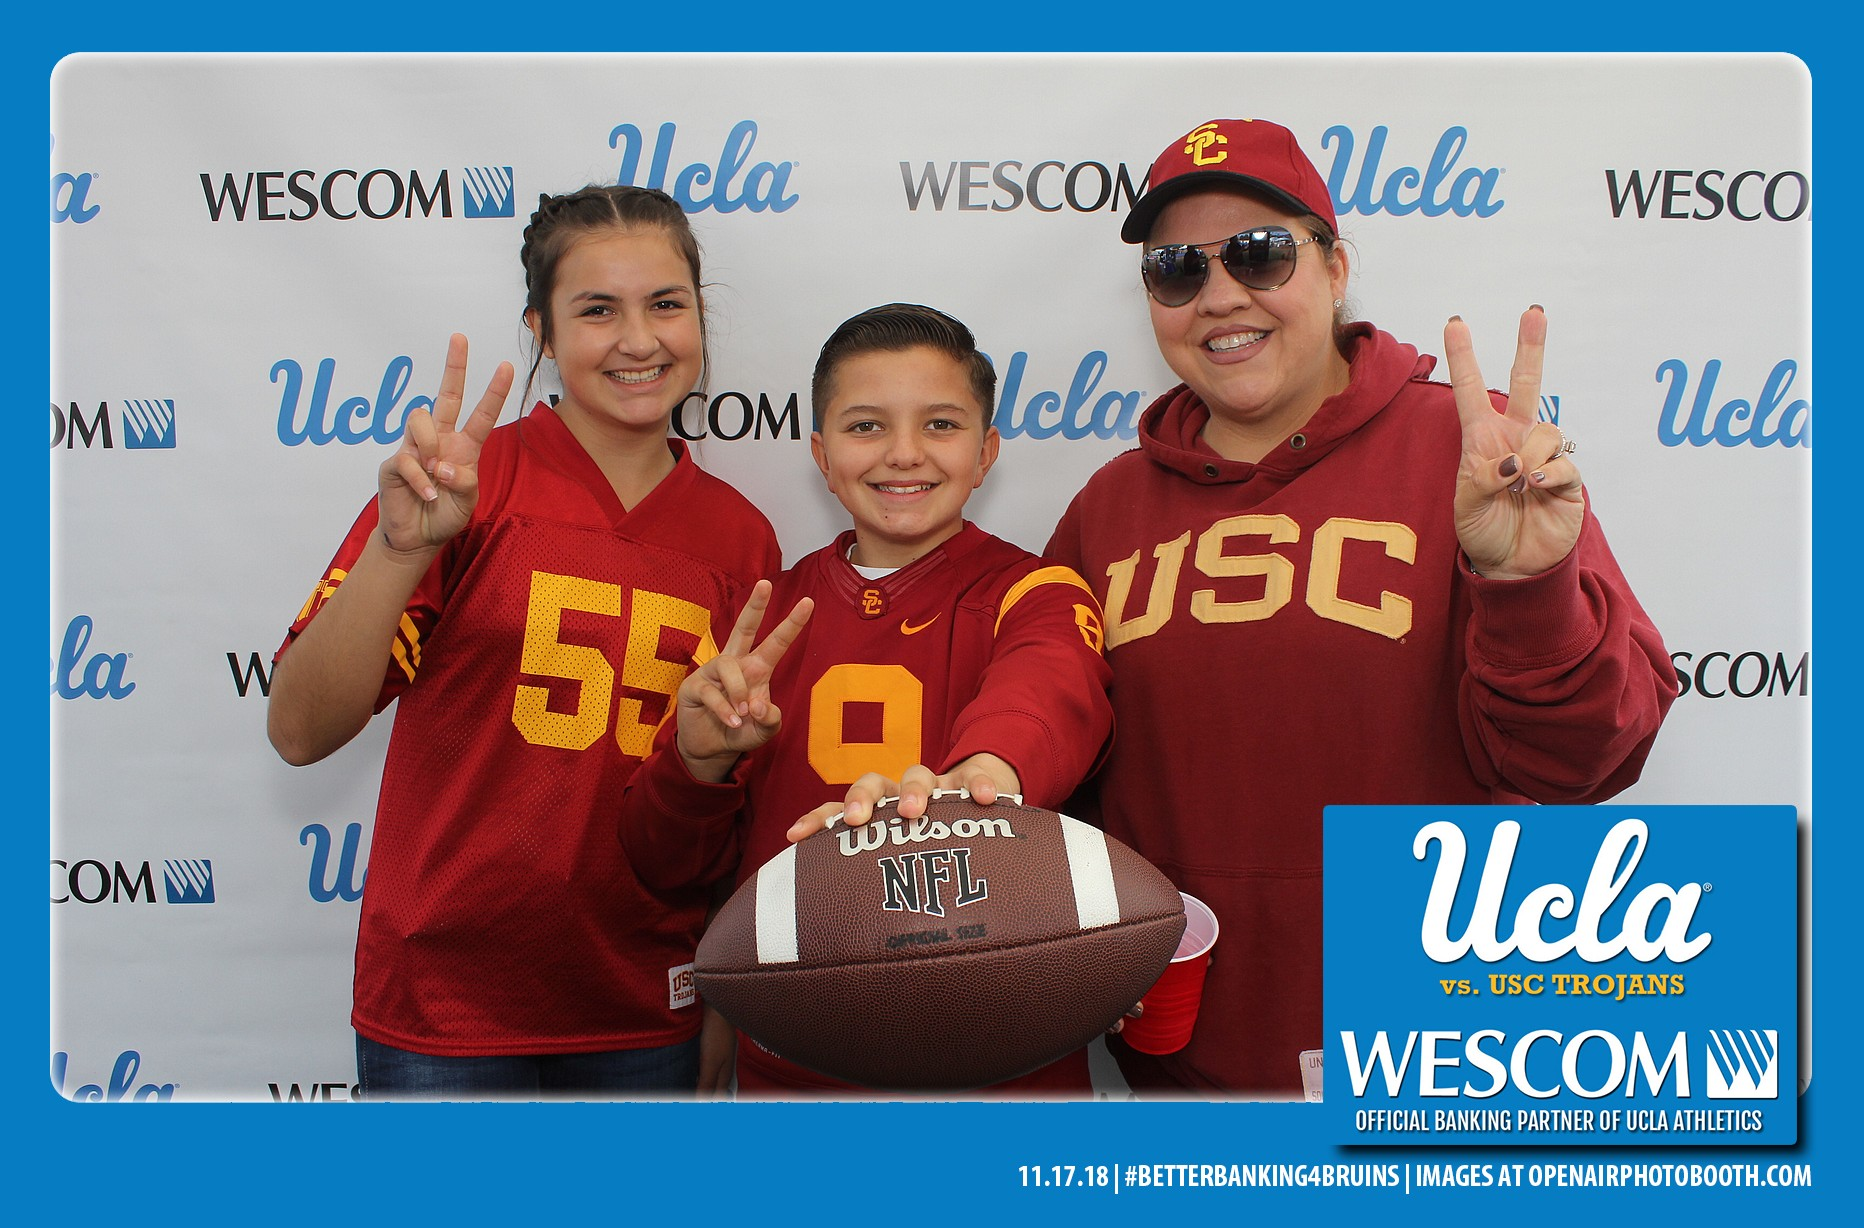 usc fans open air photobooth